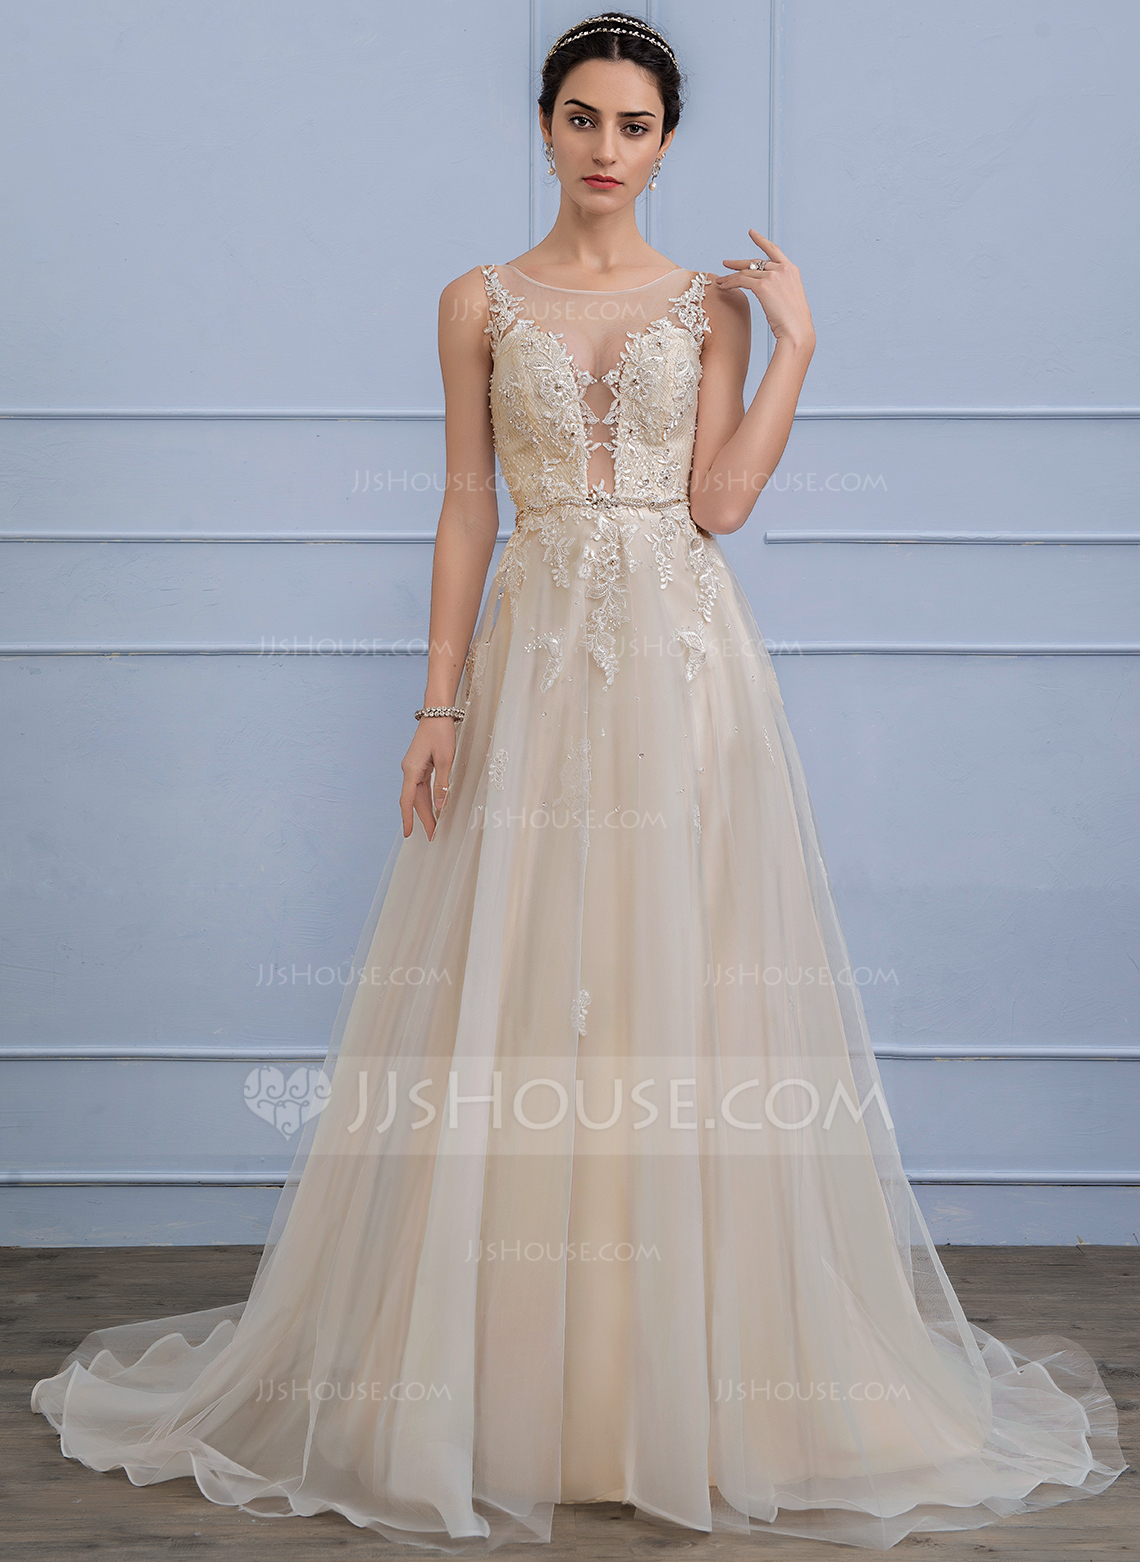 Beach p cheapest wedding dresses A Line Princess Scoop Neck Sweep Train Tulle Lace Wedding Dress With Beading Sequins